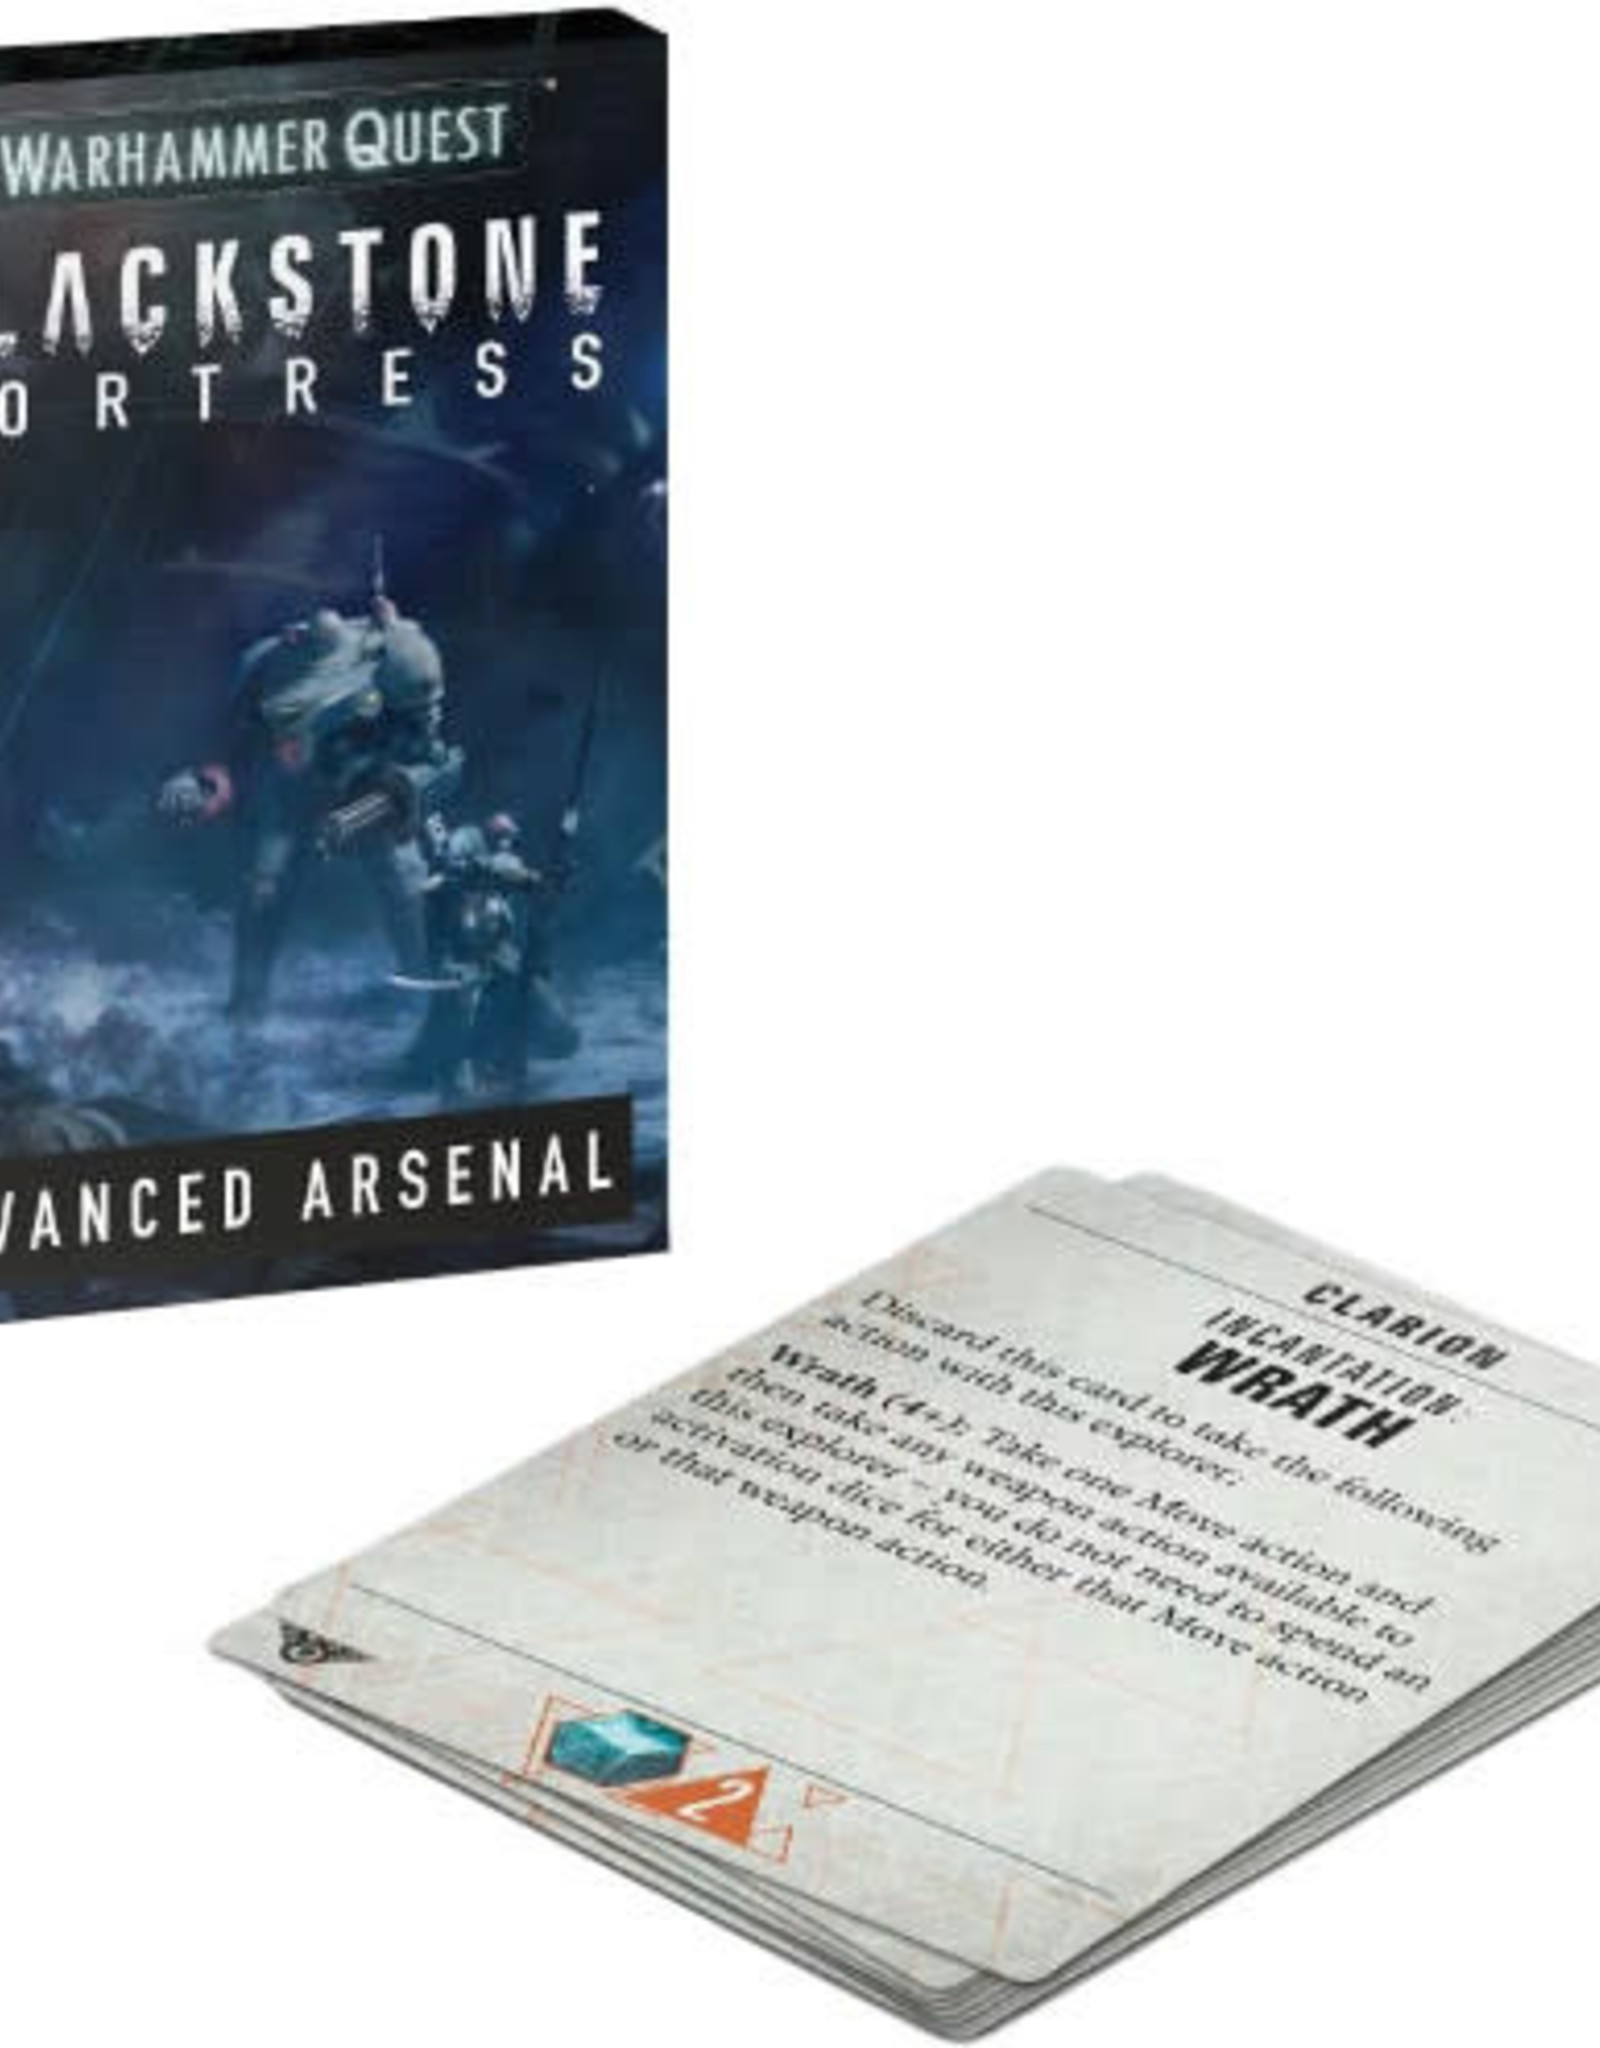 Warhammer Quest Blackstone Fortress: Advanced Arsenal